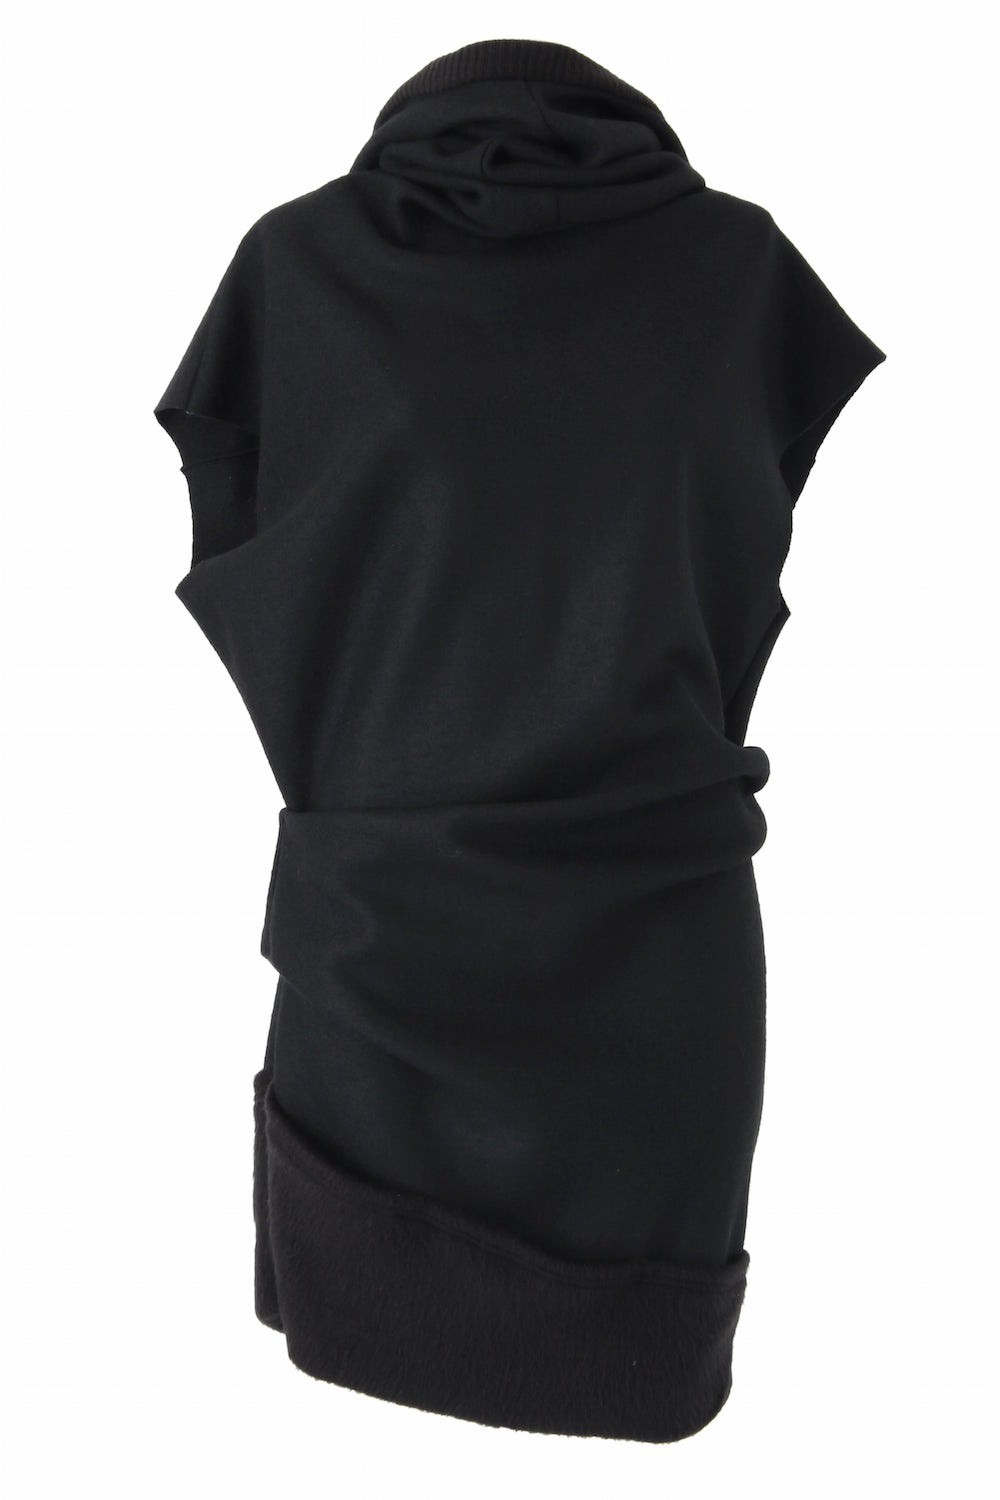 Hooded Melton One-piece Dress - ag-1008